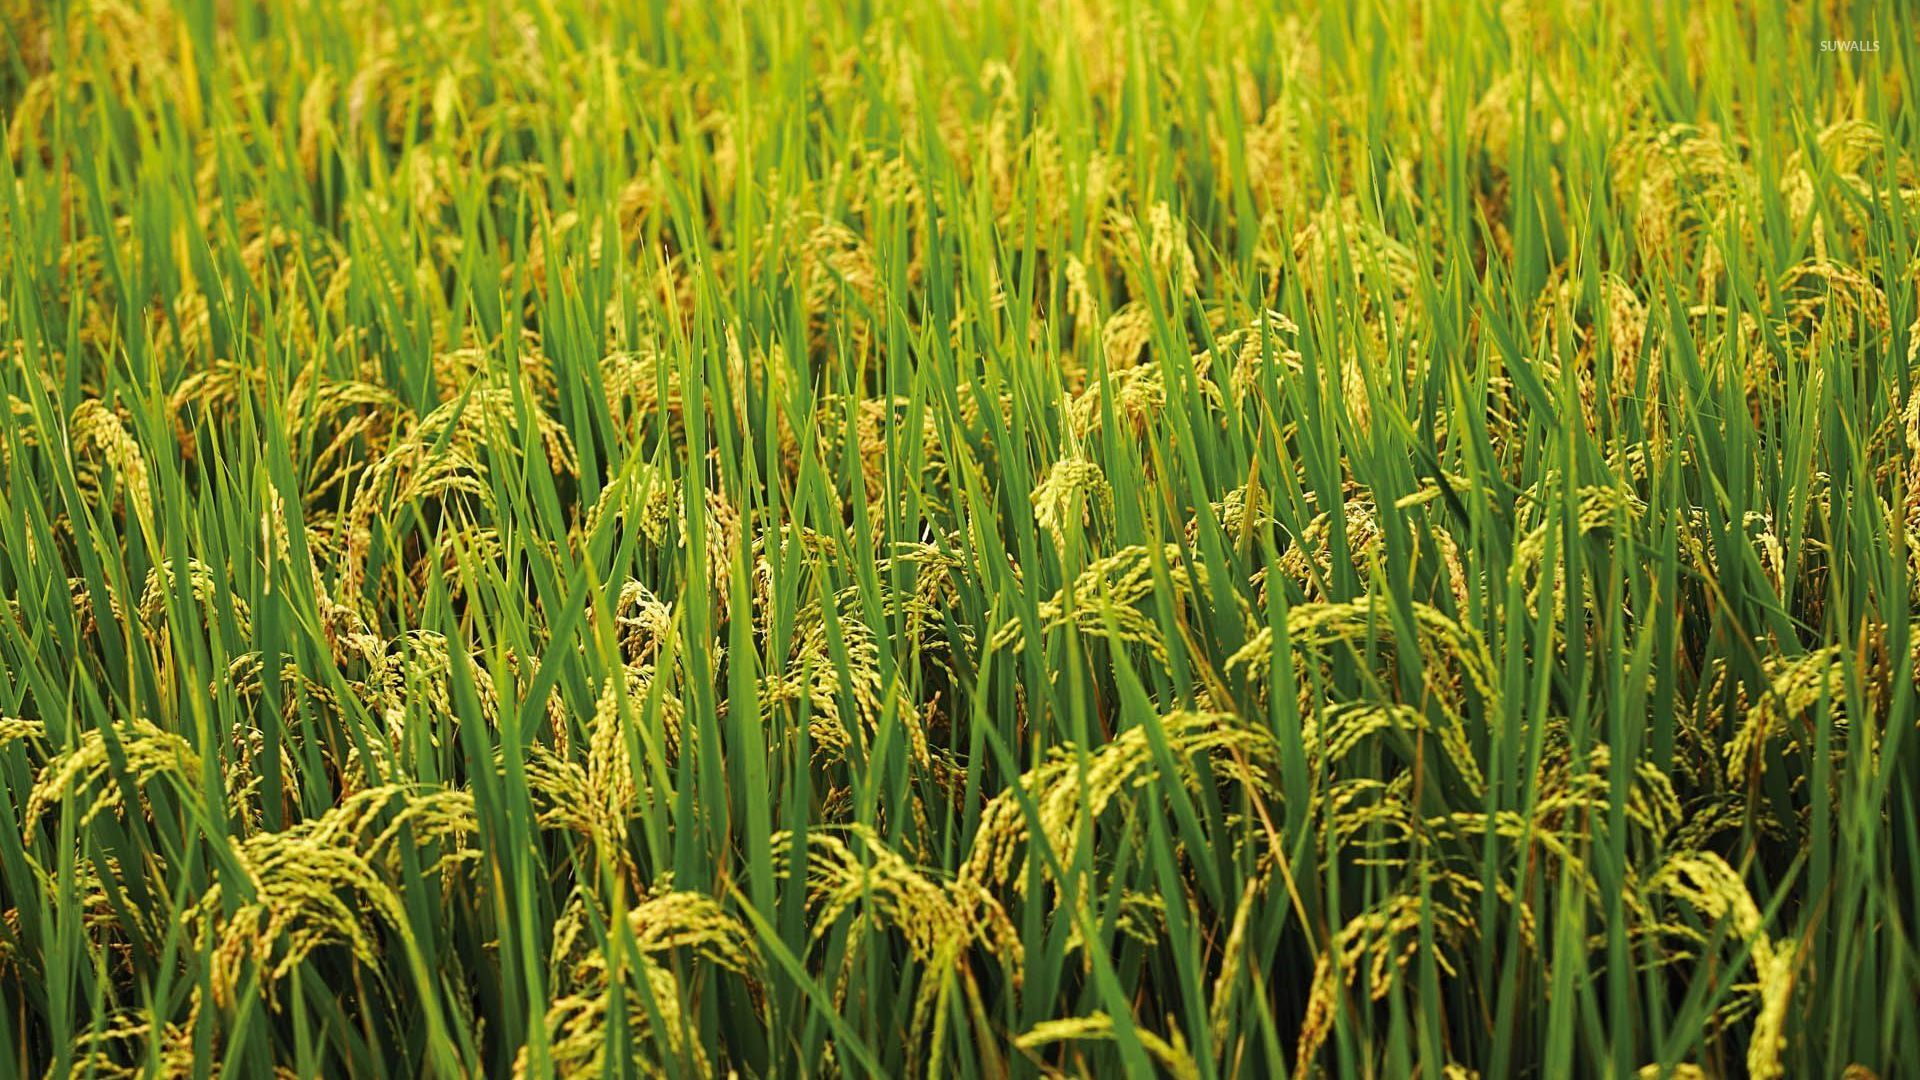 green rice field wallpaper photography wallpapers 54517